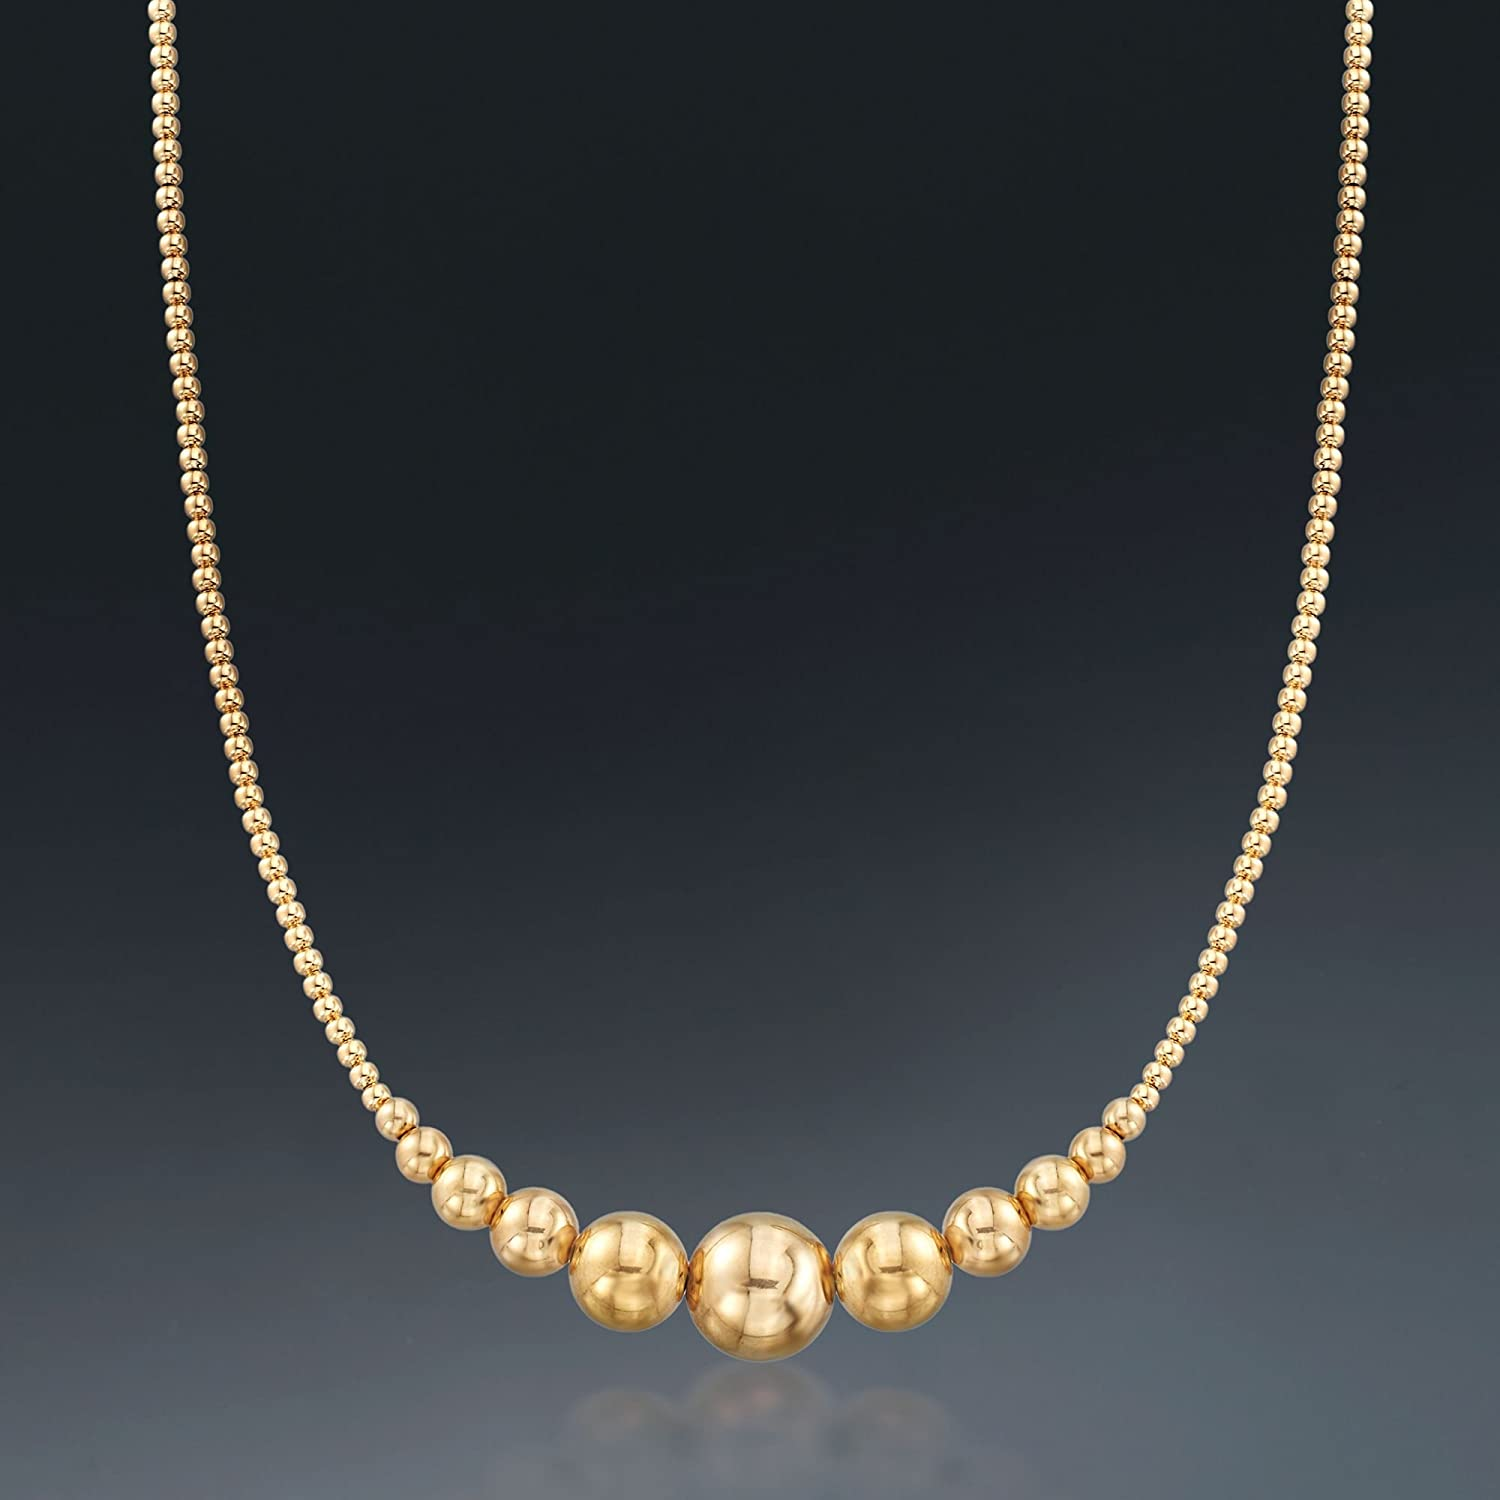 Ross-Simons 2-10mm 14kt Yellow Gold Graduated Bead Necklace